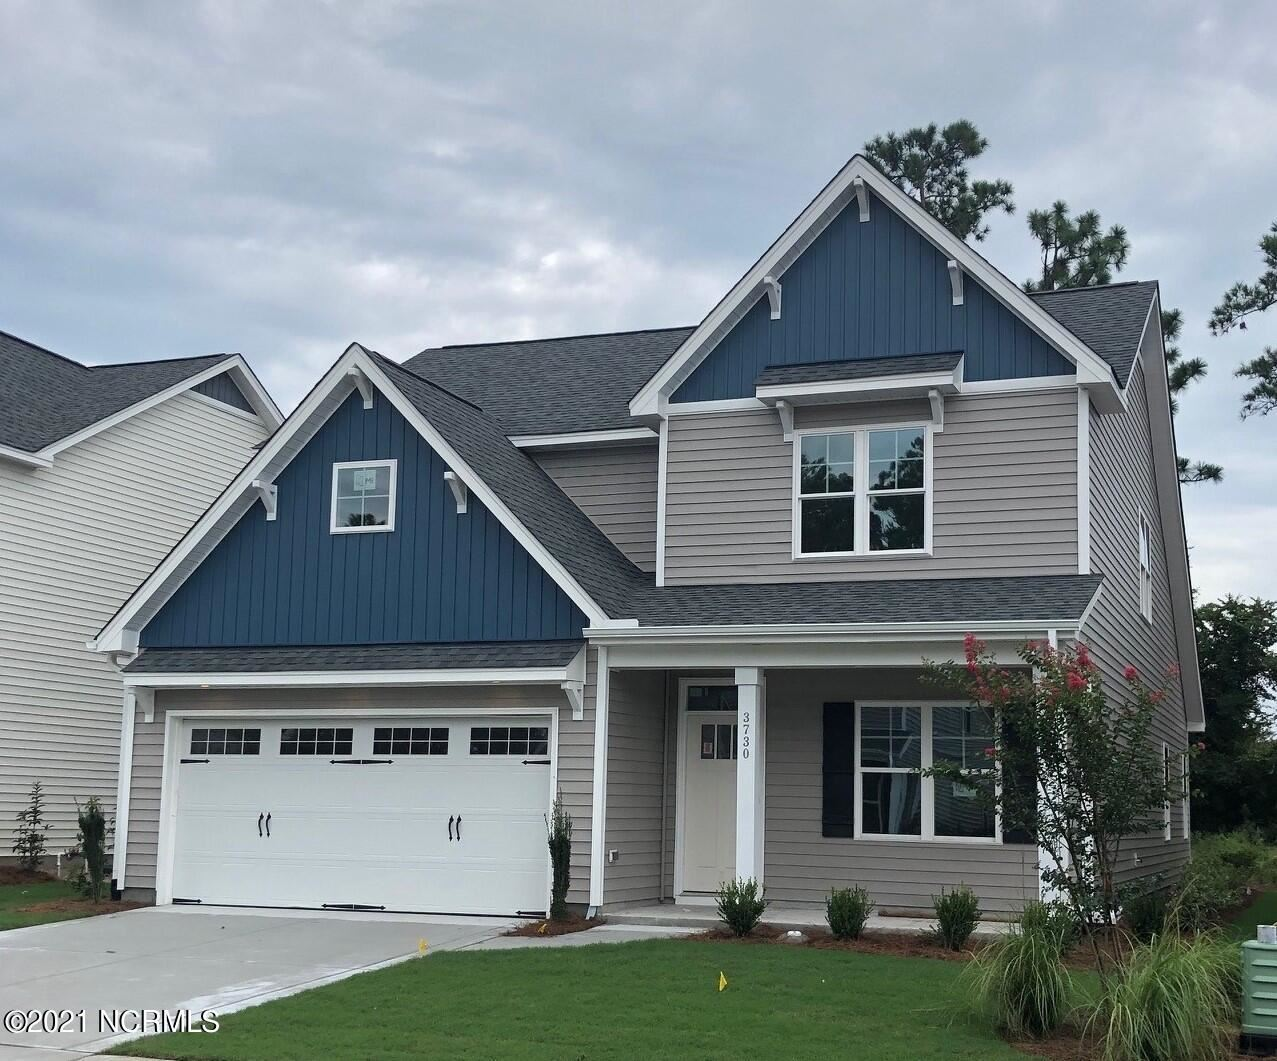 Photo for 3730 Spicetree Drive, Wilmington, NC 28412 (MLS # 100270042)